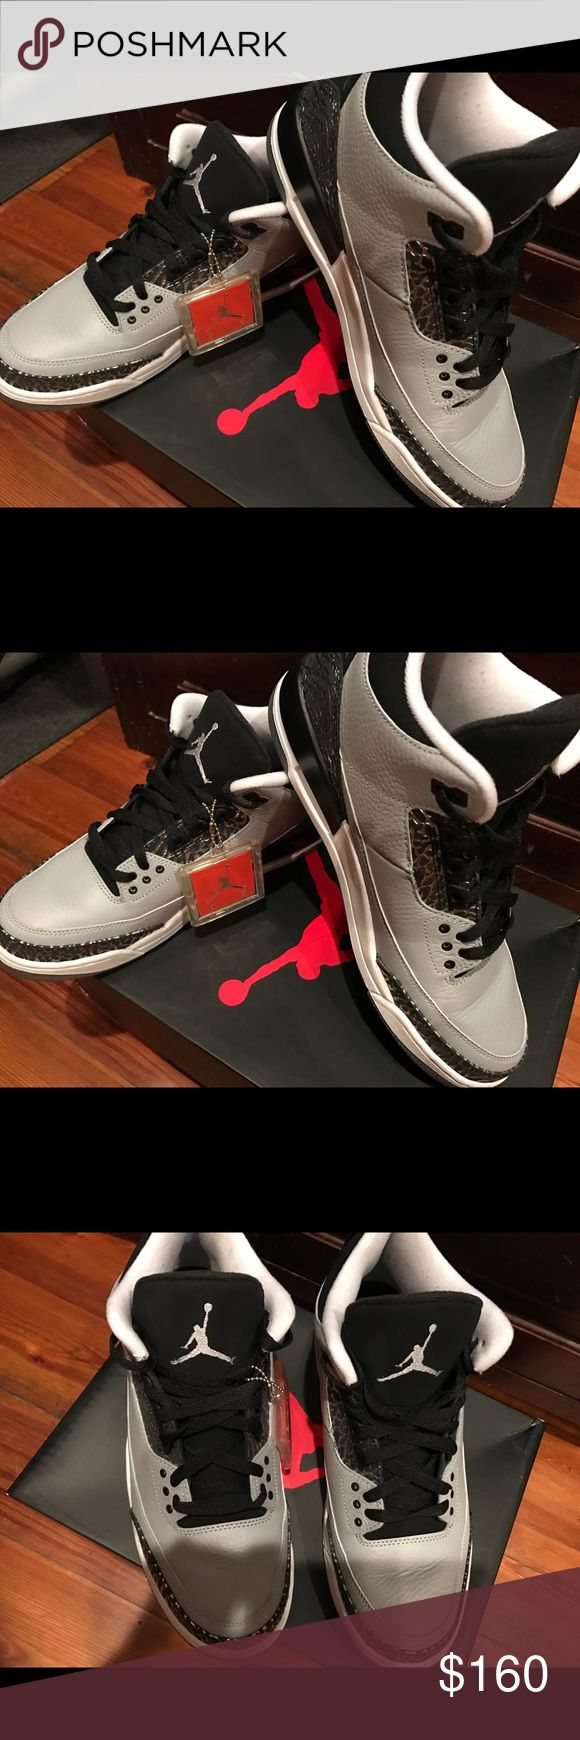 Air Jordan 3 Wolf Gray - Worn twice, like NEW Air Jordans 3 Wolf Gray - EXCELLENT CONDITION, Worn twice, LOOK BRAND NEW- kept in original box which is included when purchased Jordan Shoes Sneakers